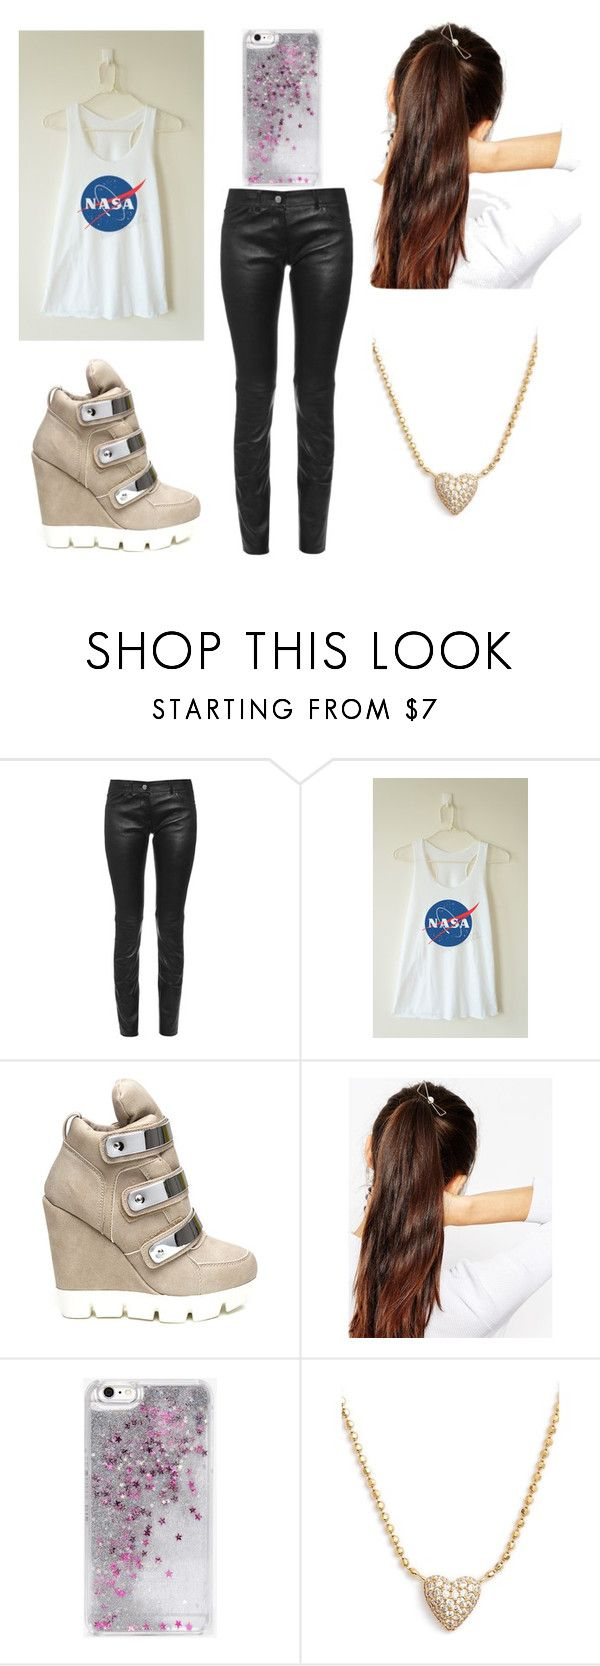 """""""Untitled #55"""" by alice-no-pais-das-maravilhas ❤ liked on Polyvore featuring beauty, Balenciaga, ASOS, Skinnydip and Nadri"""